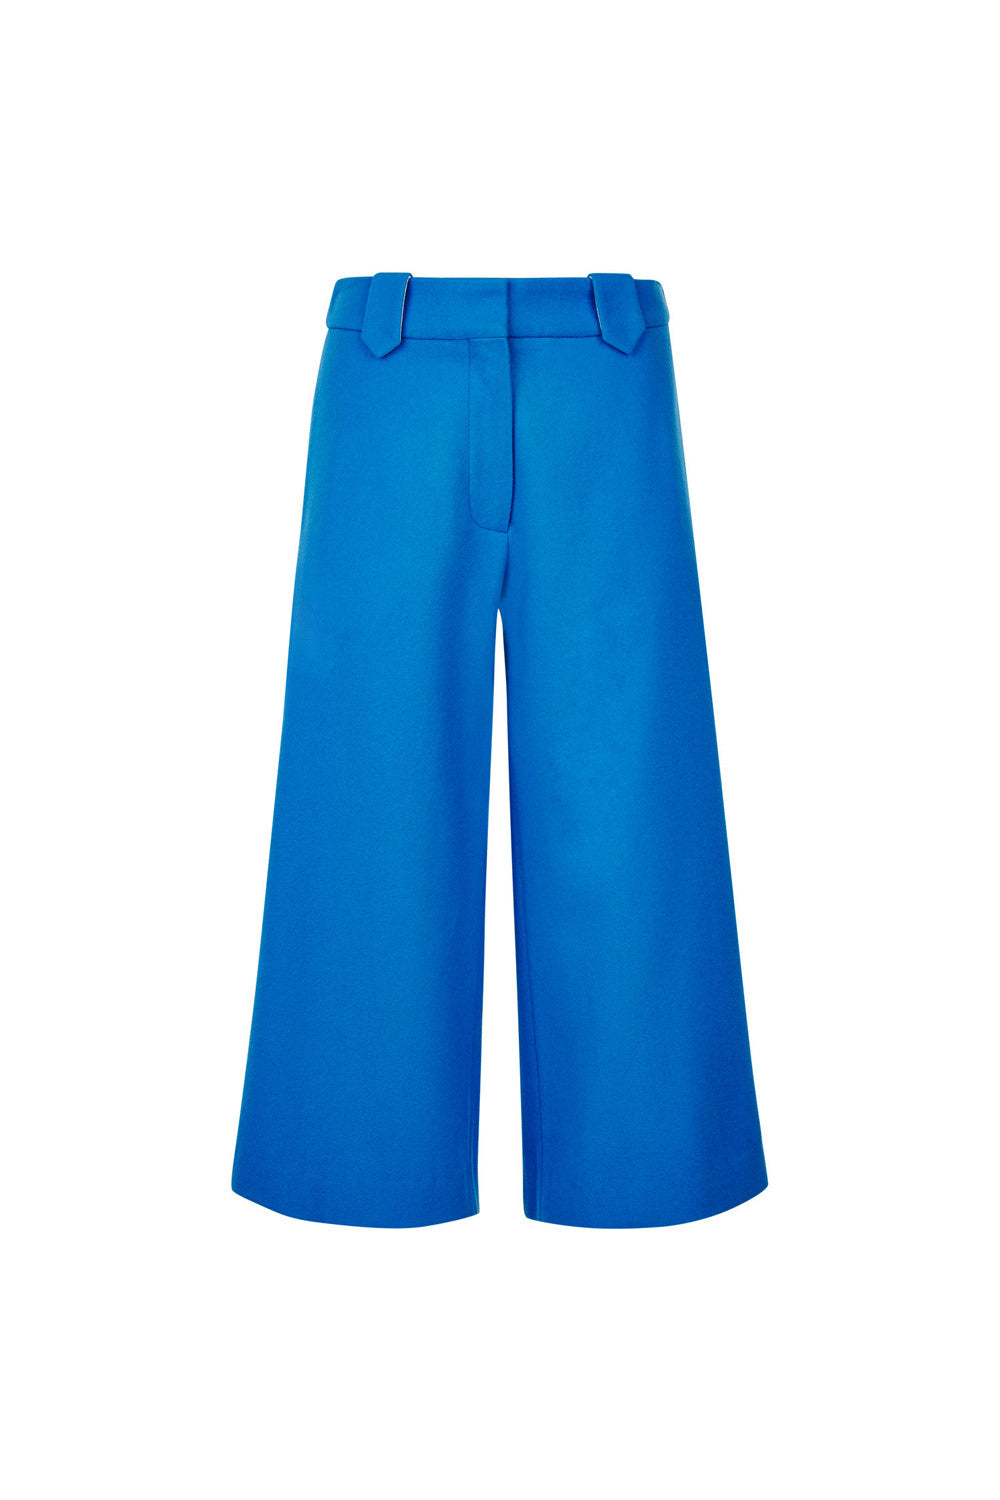 Orla Culottes - Womenswear - Madderson London